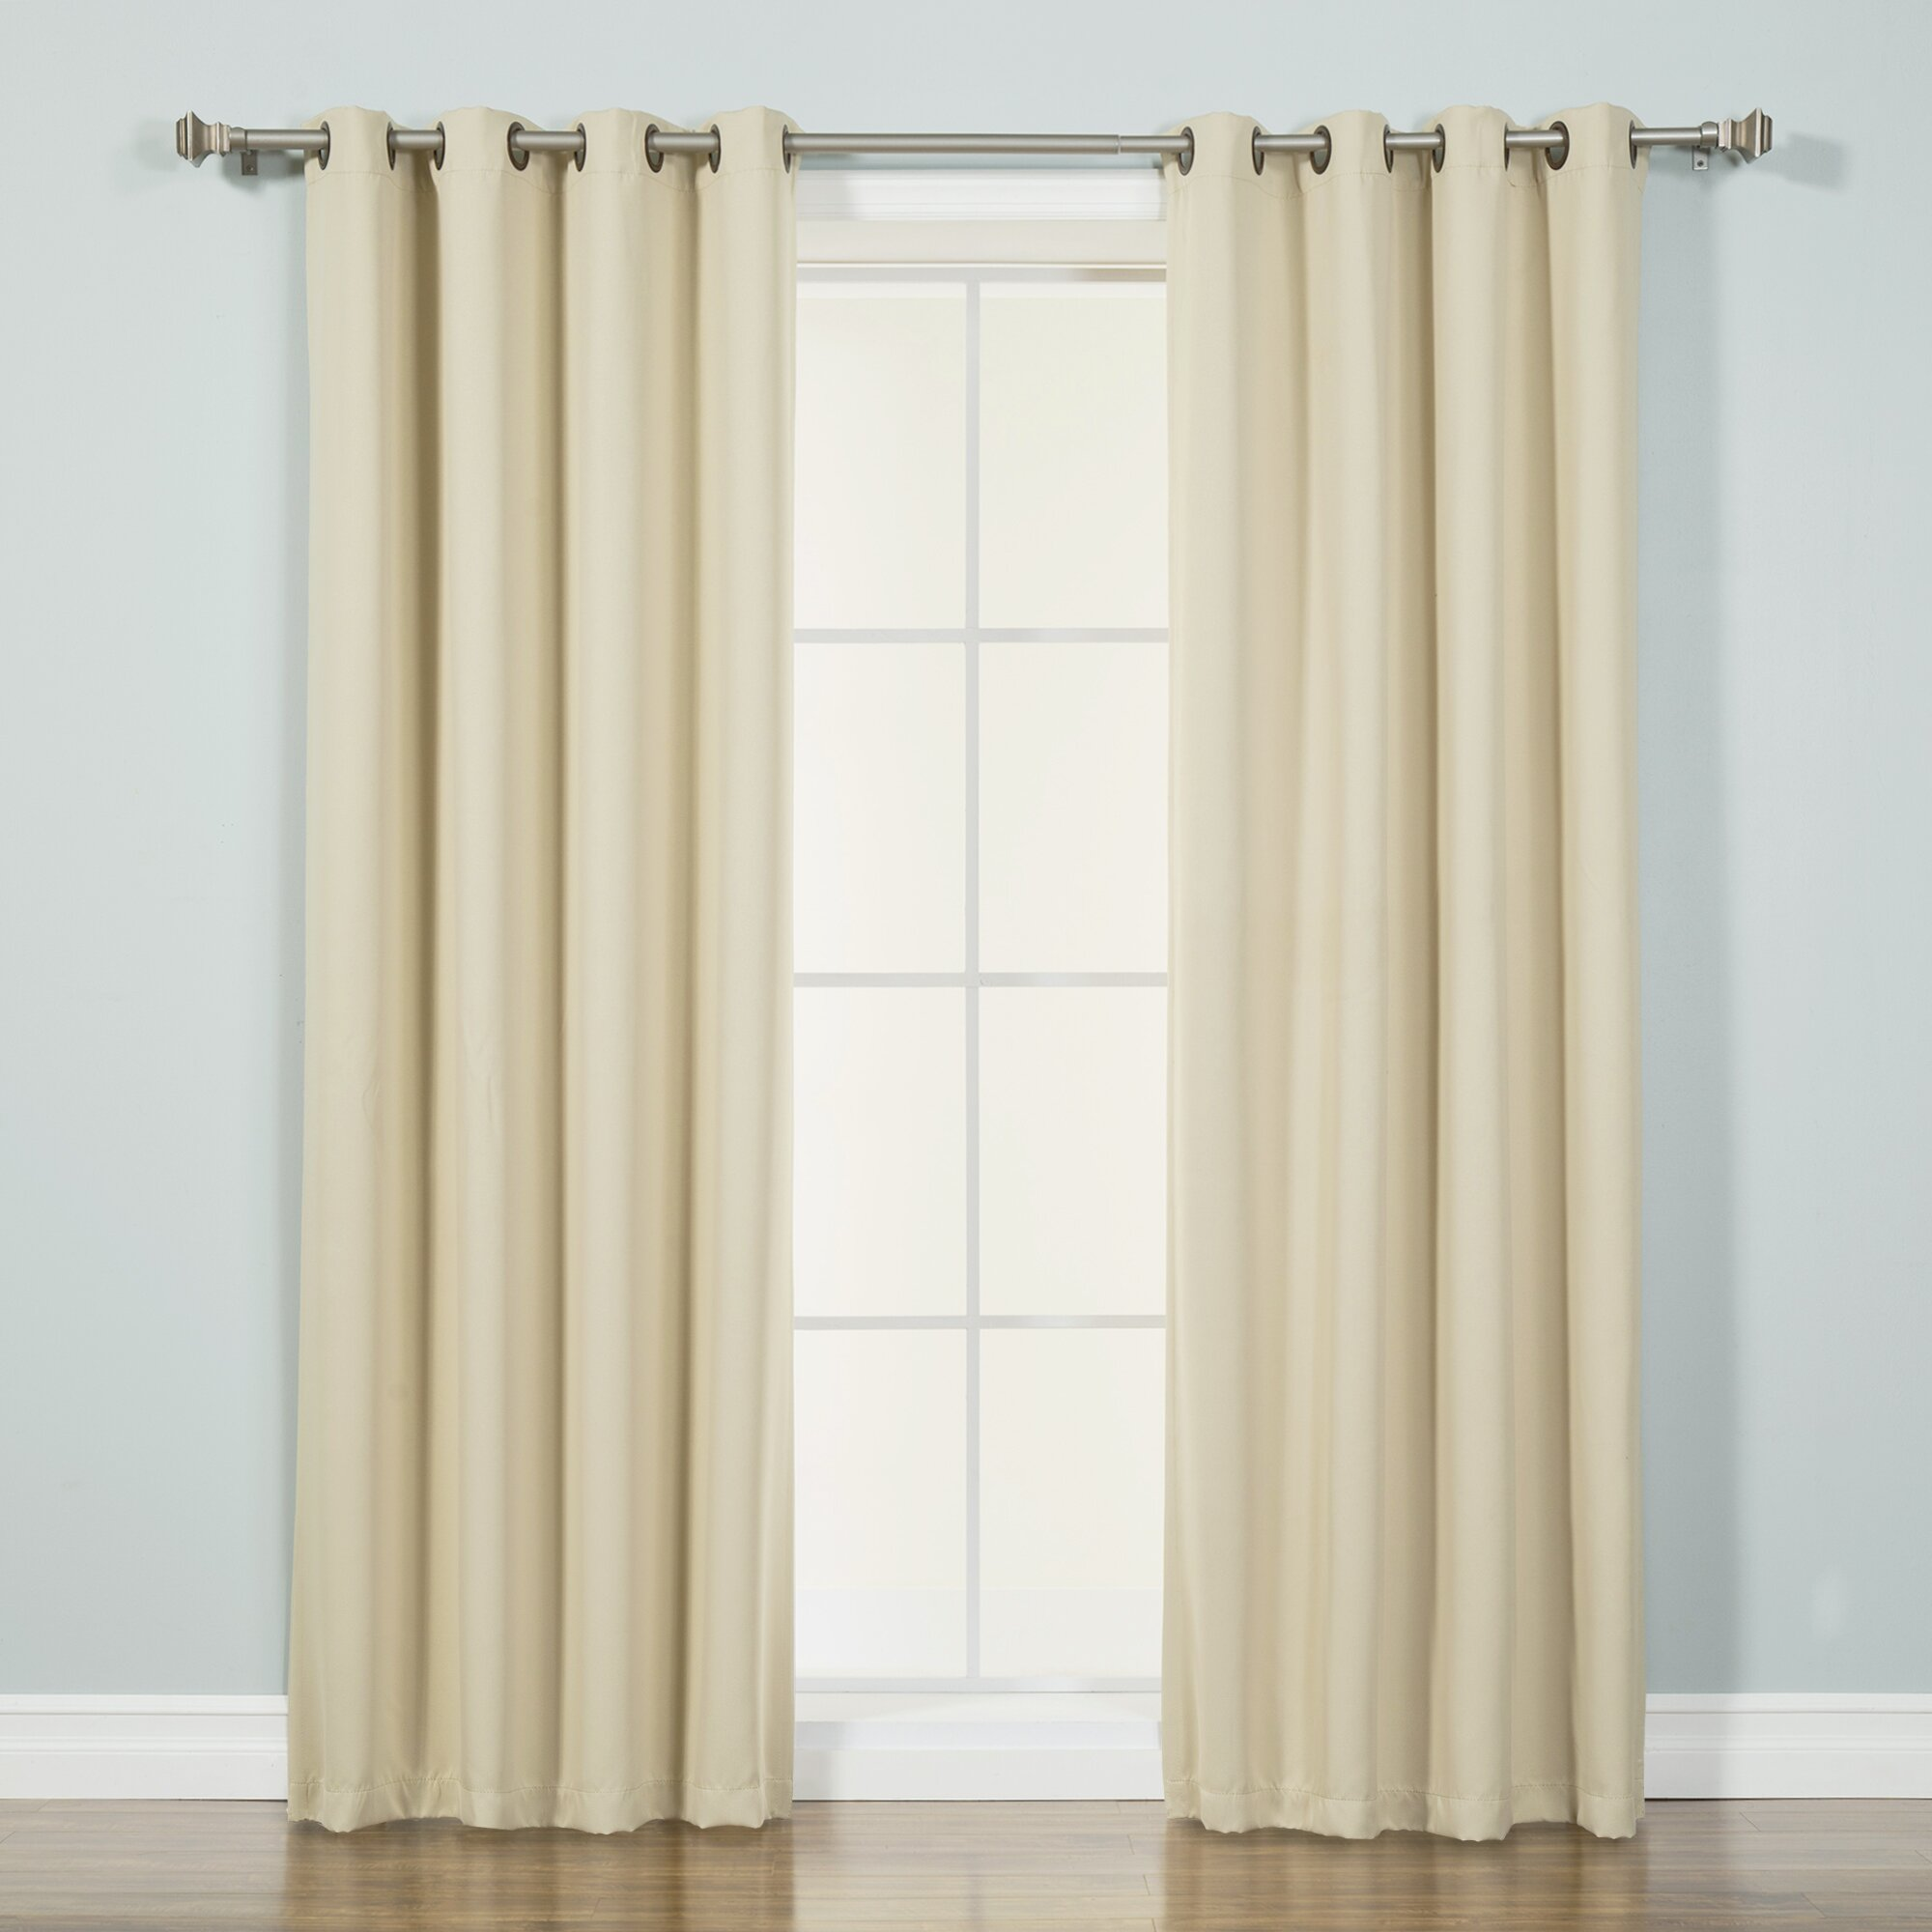 Best home fashion inc basic blackout thermal curtain for Home curtains